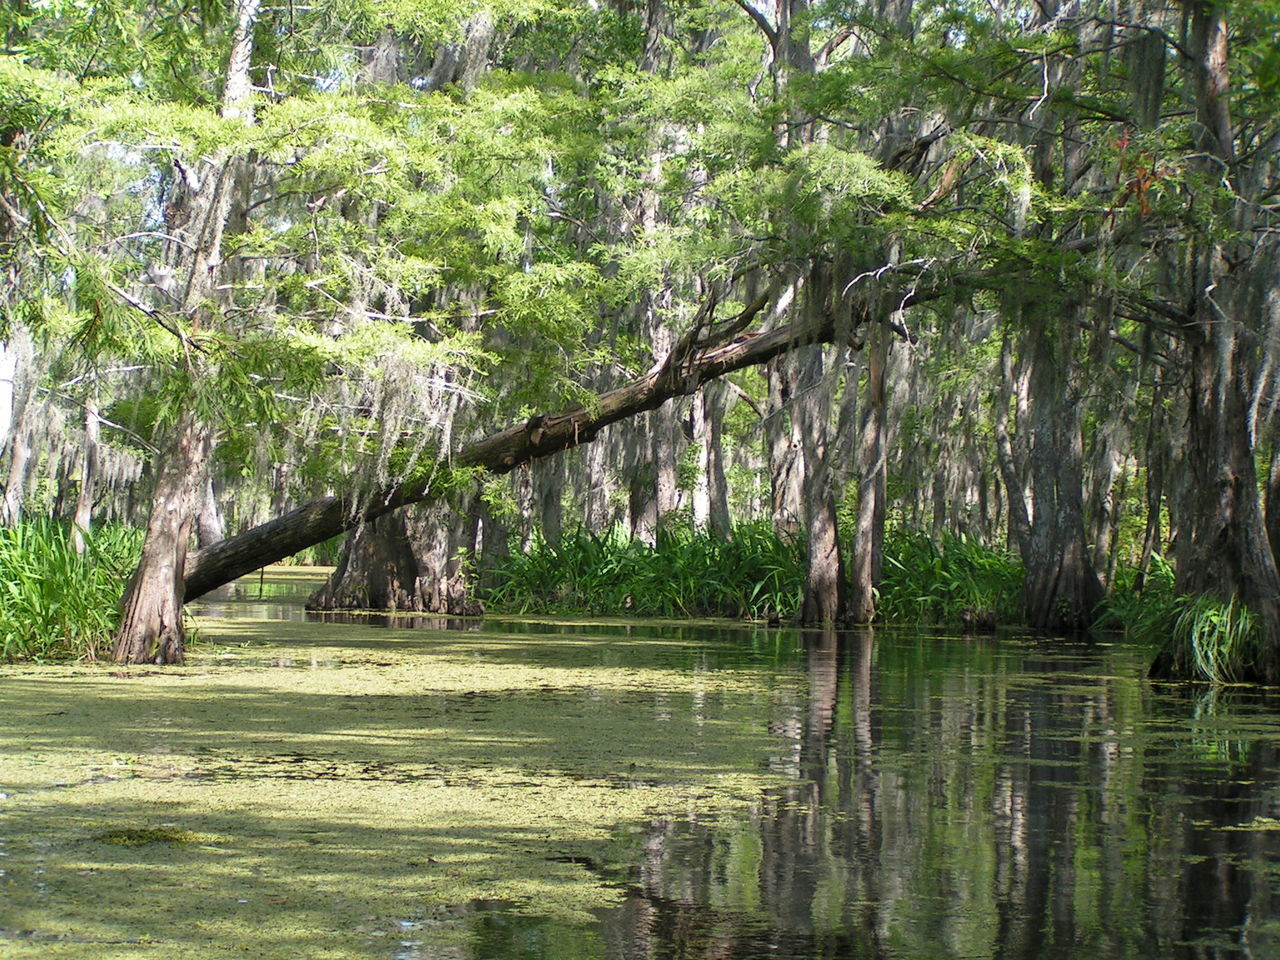 Beauty In Nature Branch Day Growth Lake Nature No People Outdoors Tree Water Louisiana Swamp Louisiana Bayou Bayou Louisiana Green Color